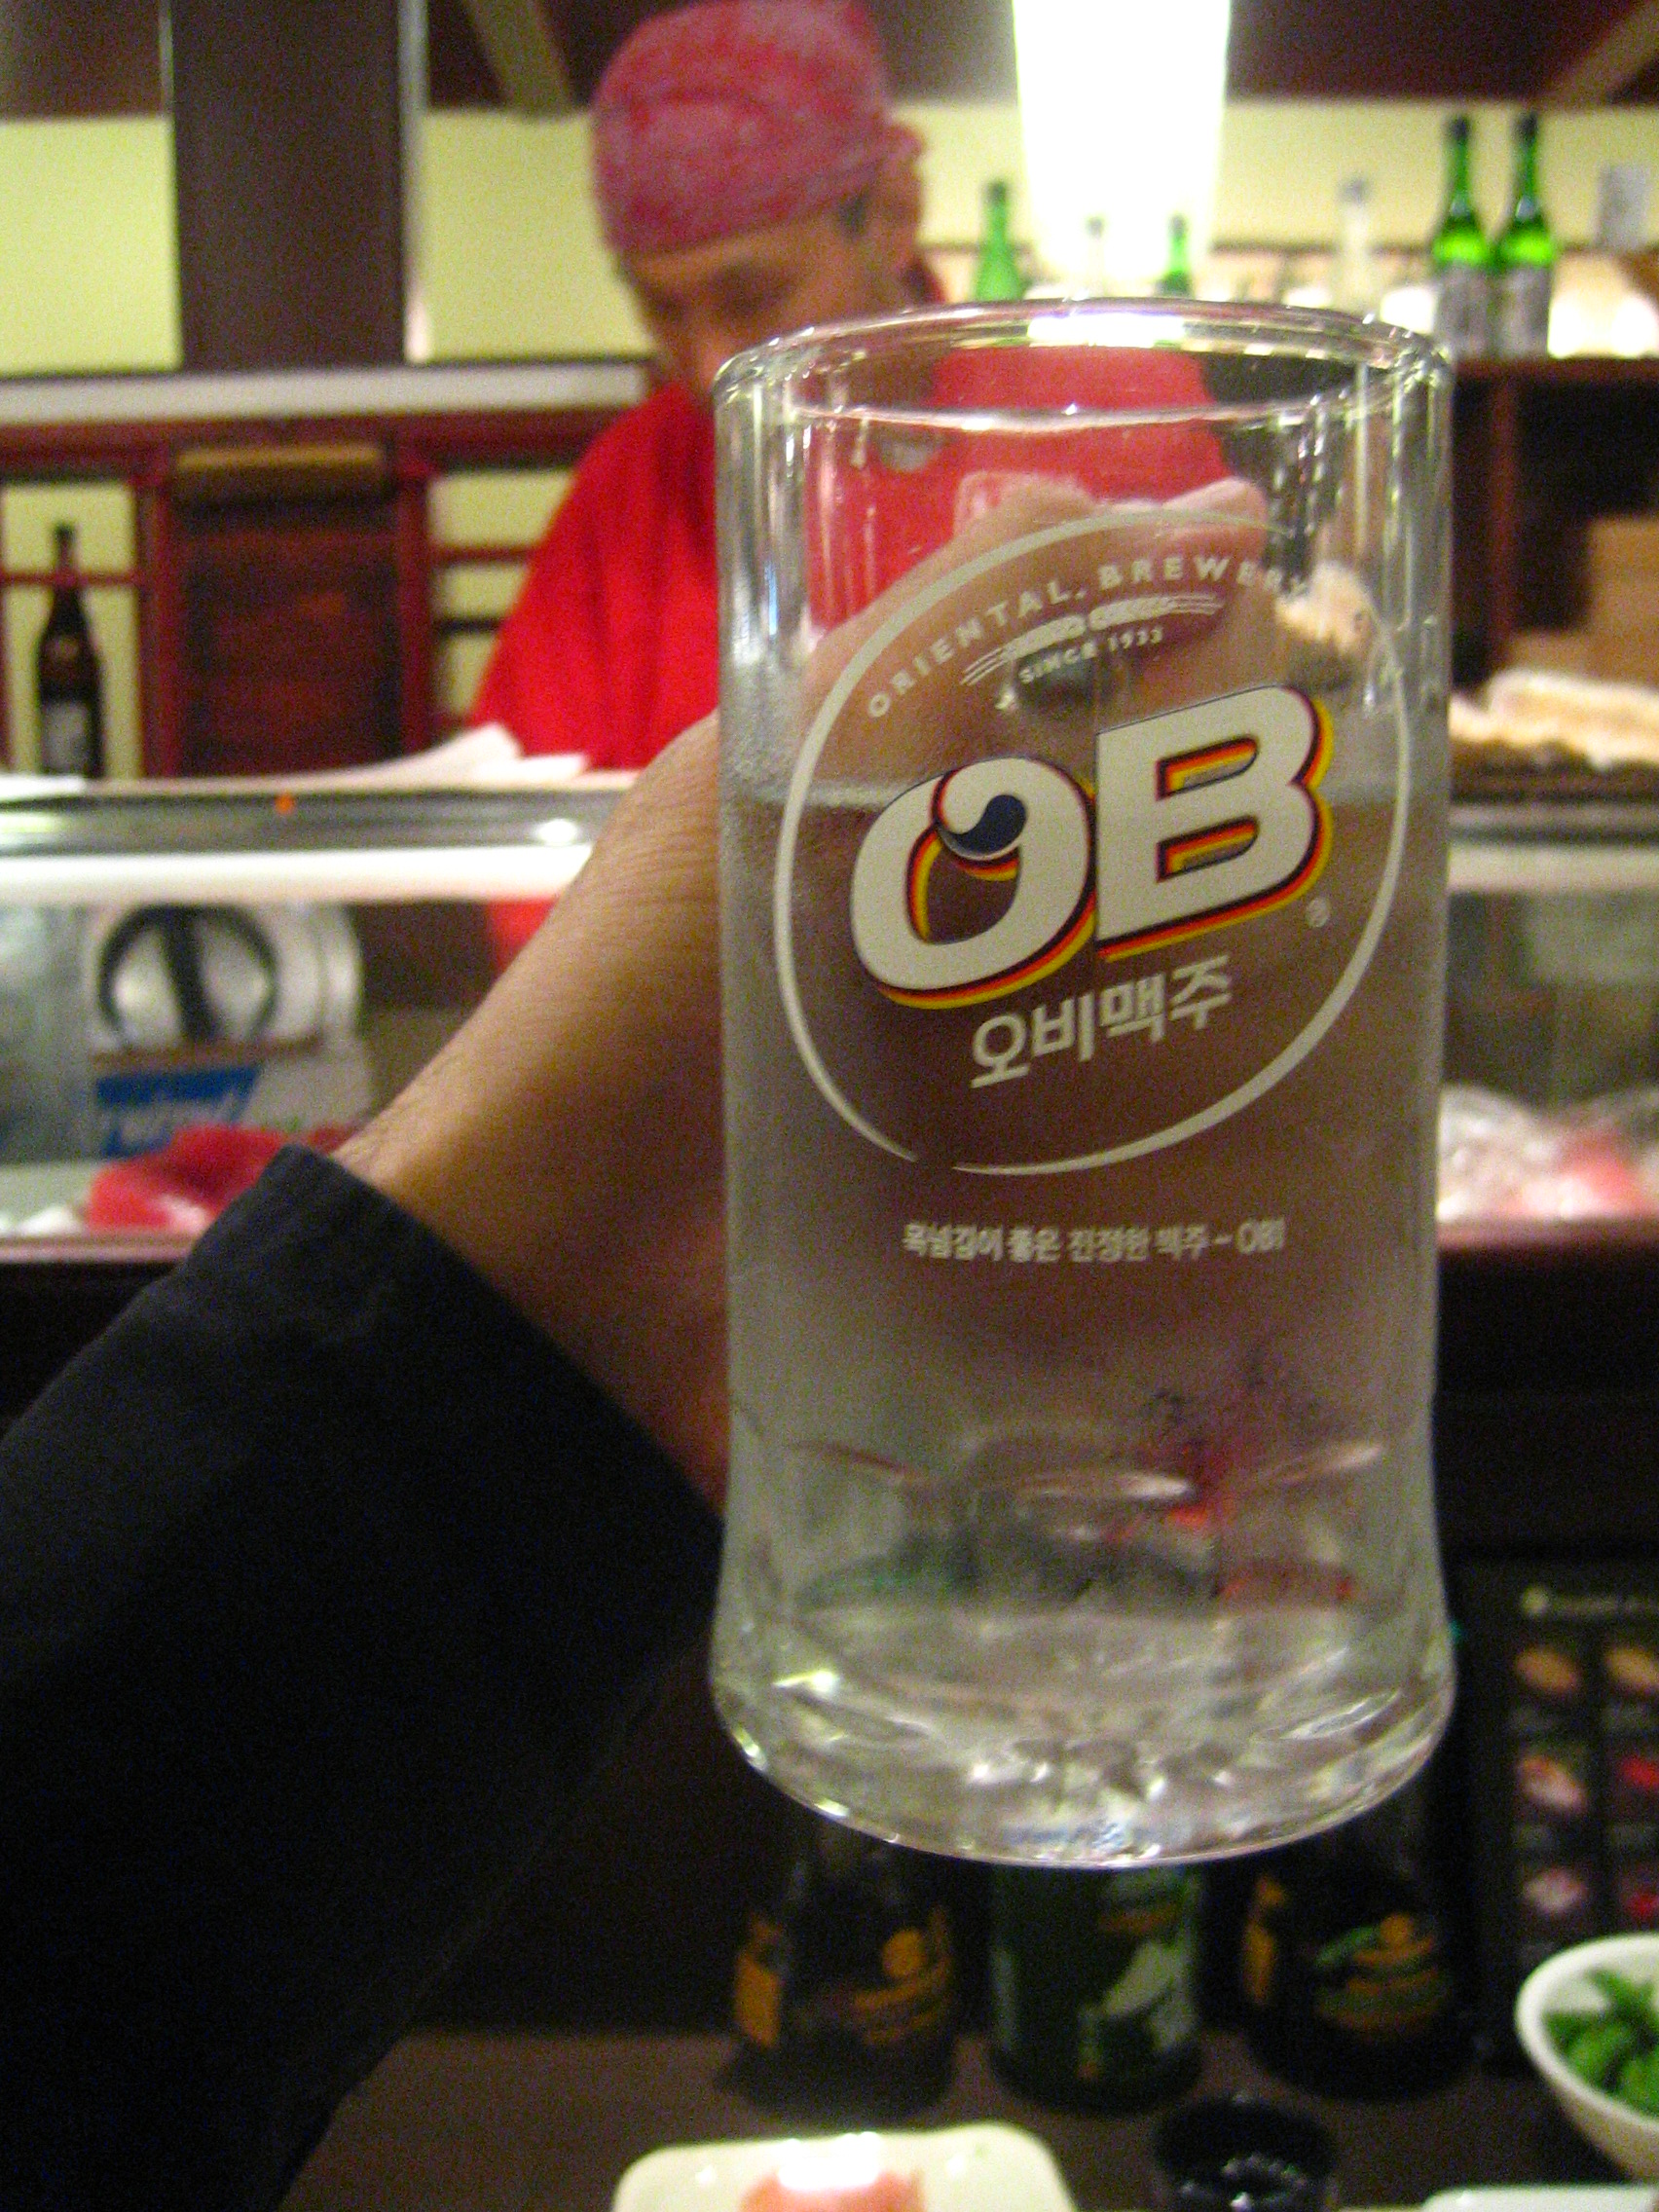 Anheuser-Busch InBev, KKR and Affinity Equity Partners announced that AB InBev has successfully completed the acquisition of Oriental Brewery, the leading brewer in South Korea. (image: rick/Flickr)